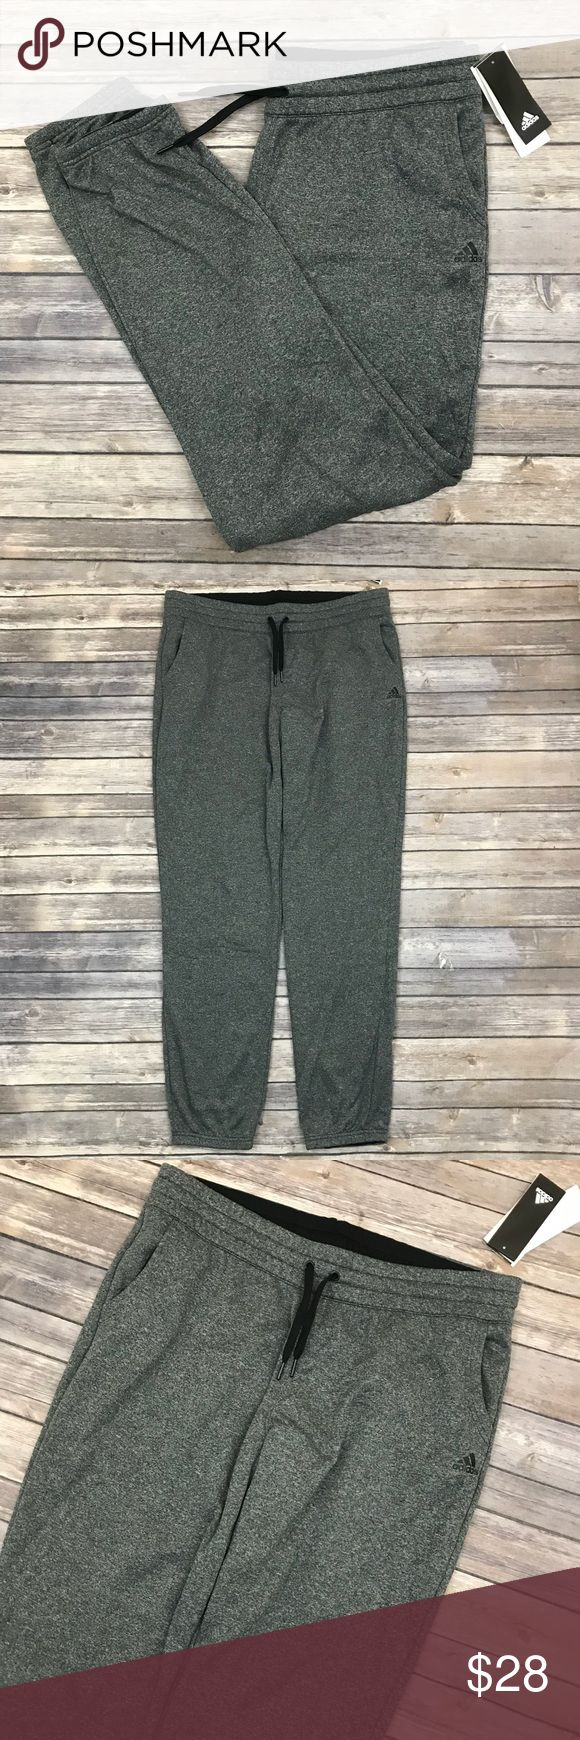 New Adidas Ultra Fleece Sweat Pants in Grey Adidas Ultra Fleece Jogger Sweat Pants in Grey Marl •New with tags •Size XL •Retails for $45  Check out my other listings- Nike, adidas, Michael Kors, Hunter Boots, Kate Spade, Miss Me, Rock Revival, Coach, Wildfox, Victoria's Secret, PINK, True Religion, Ugg Australia, Free People and more! adidas Pants Track Pants & Joggers